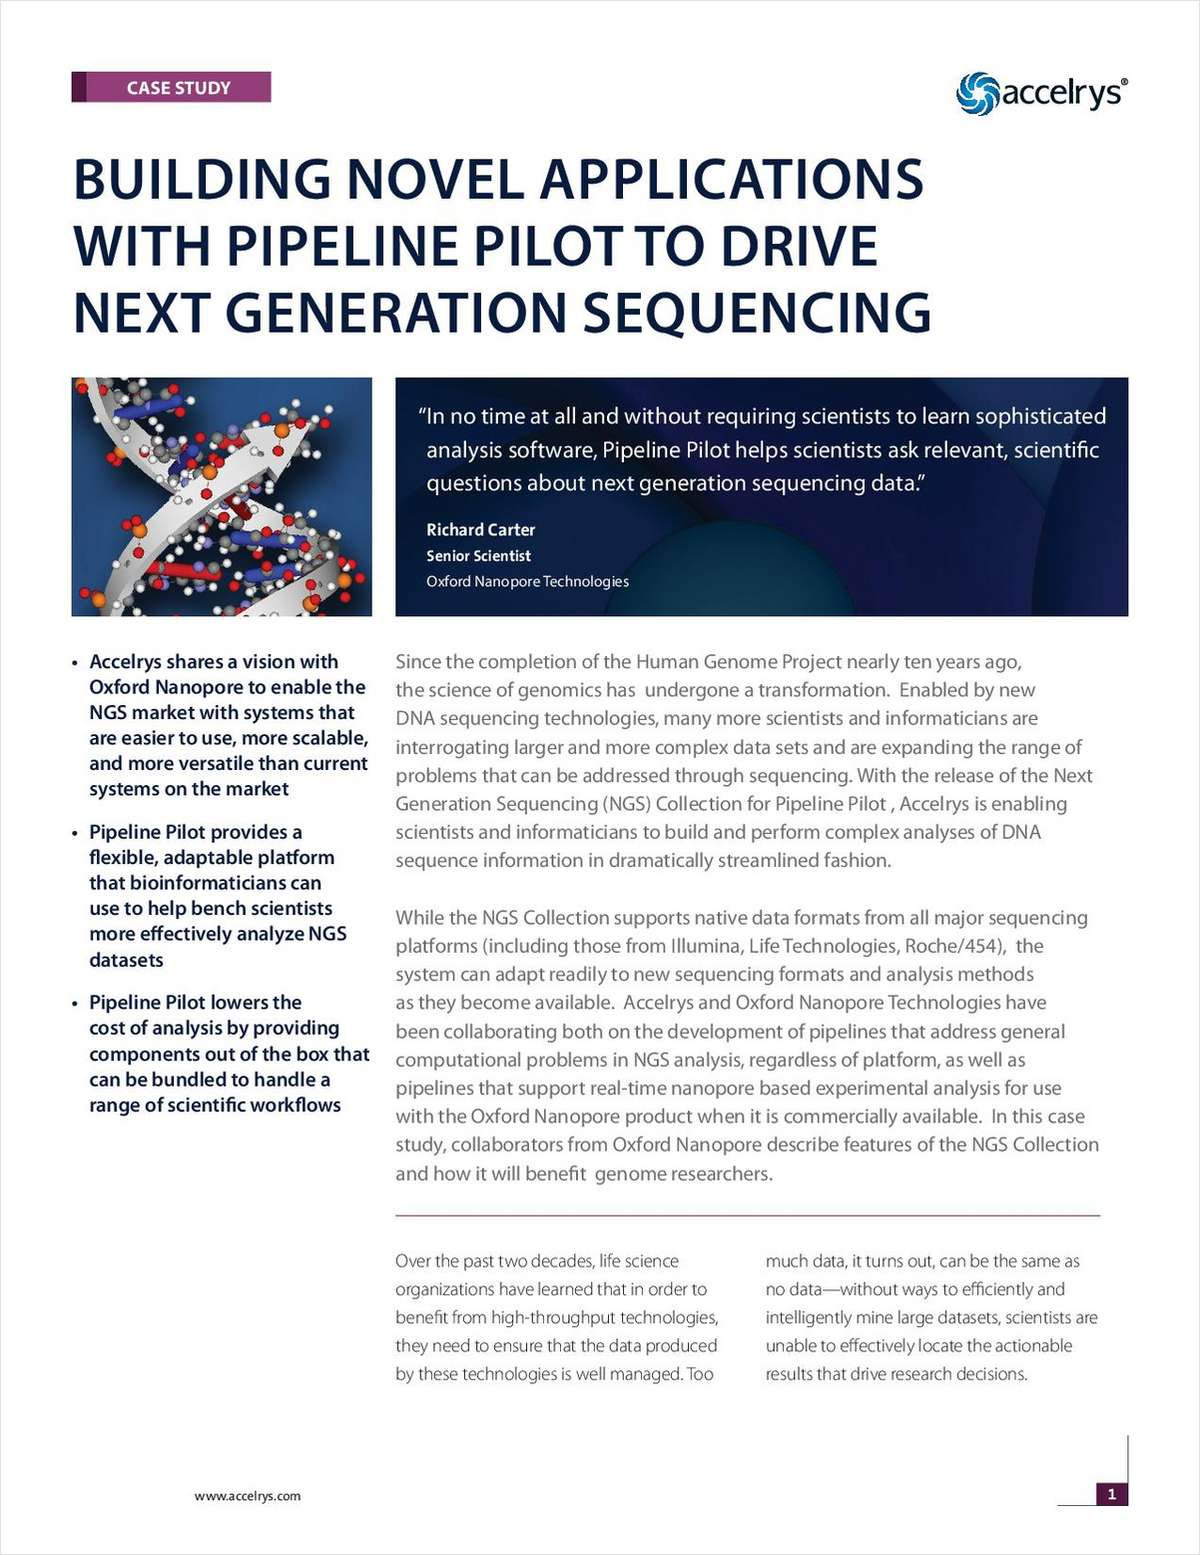 Building Novel Applications with Pipeline Pilot to Drive Next Generation Sequencing